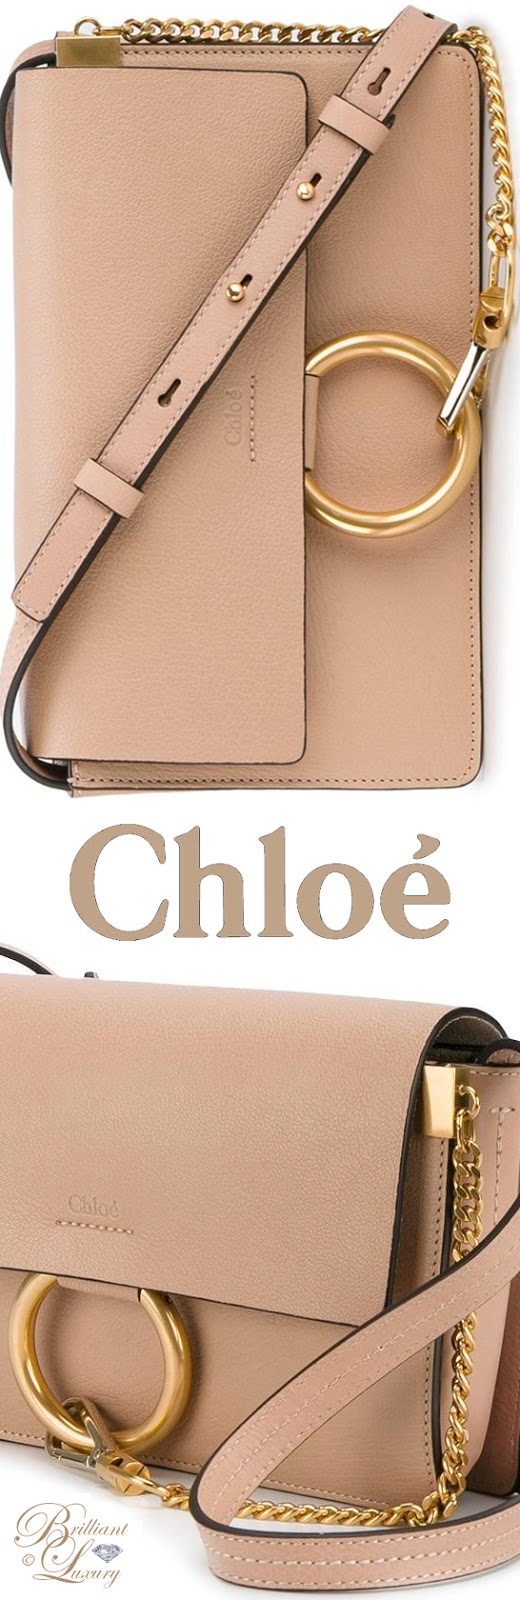 Brilliant Luxury ♦ Chloé Small Faye Shoulder Bag